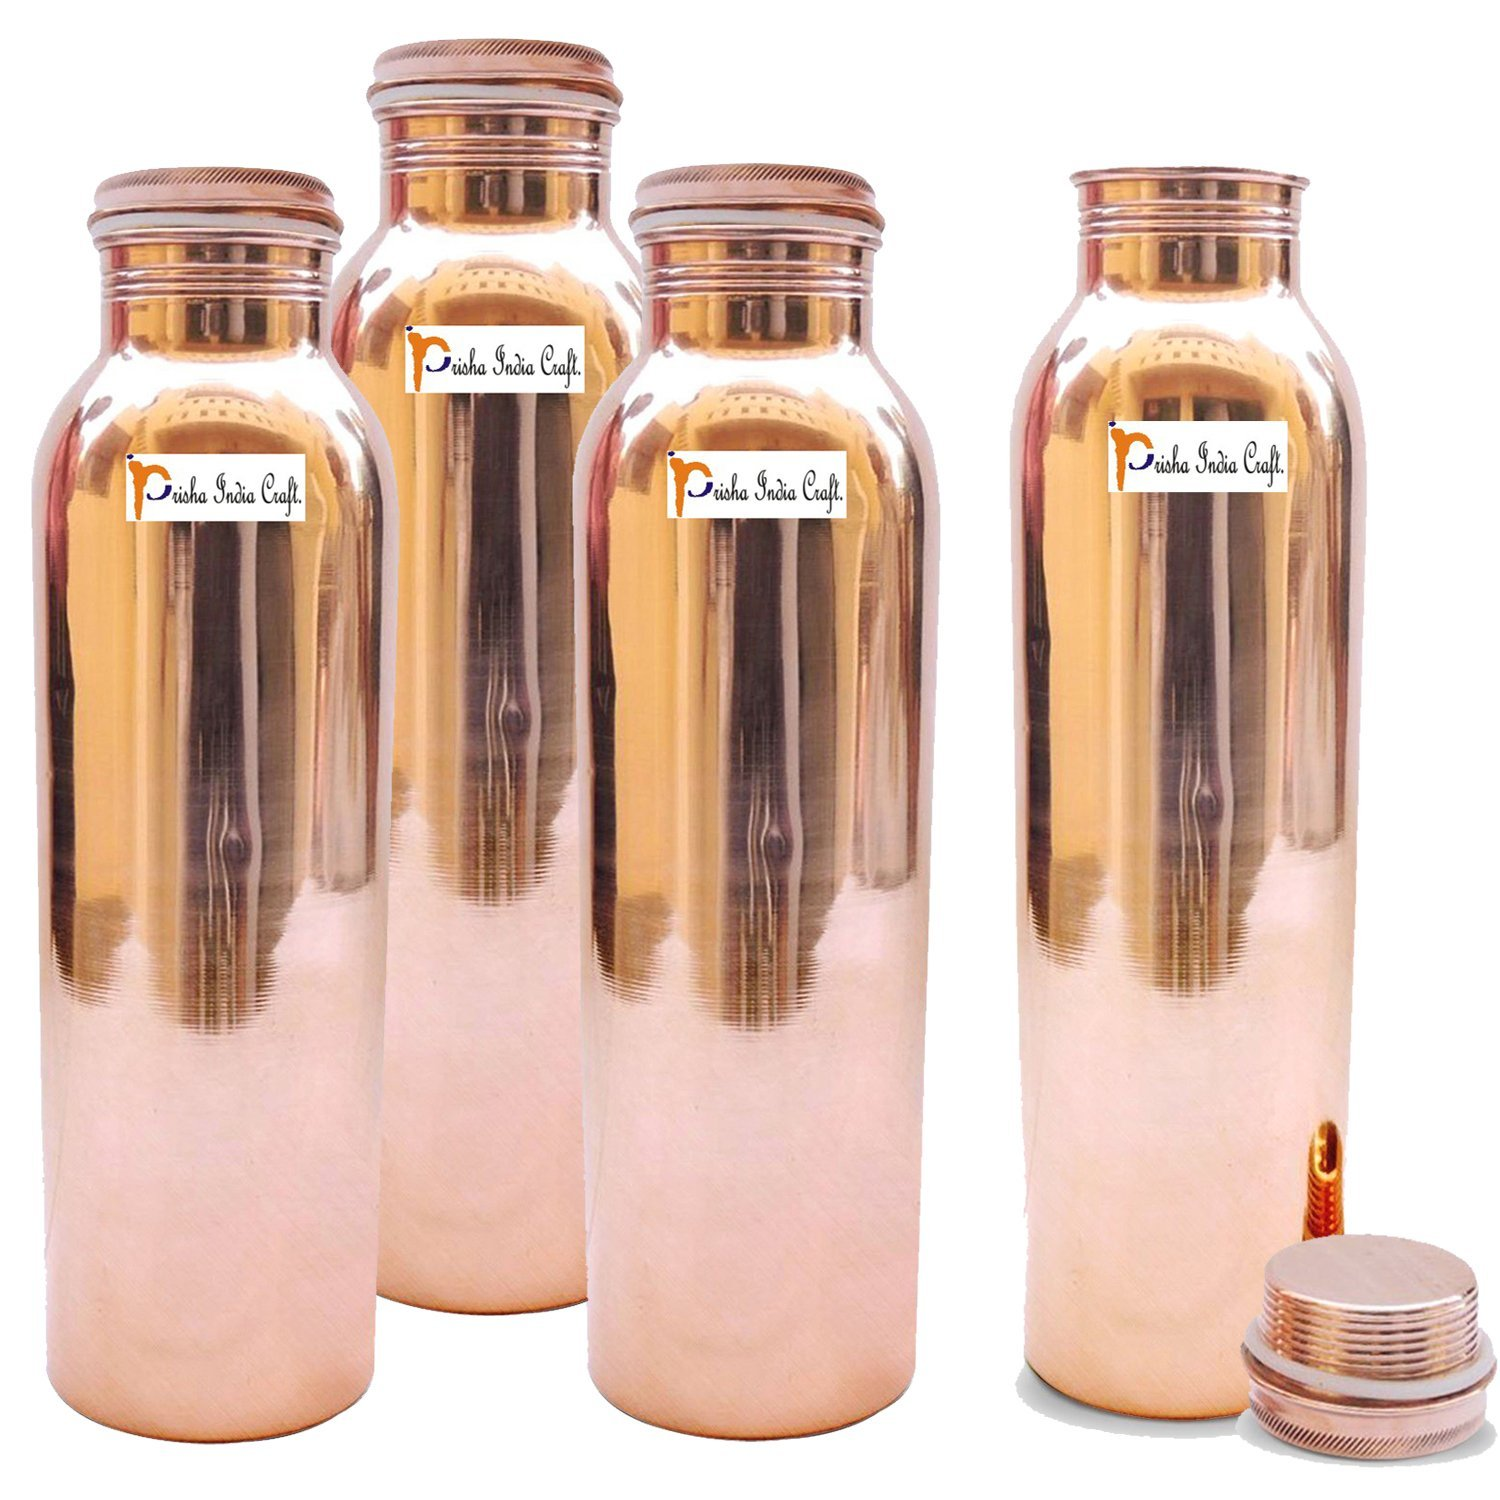 1150ml / 38.89oz - Set of 4 - Prisha India Craft Pure Copper Water Bottle for Health Benefits - Water Bottles Joint Free, Handmade - Christmas Gift